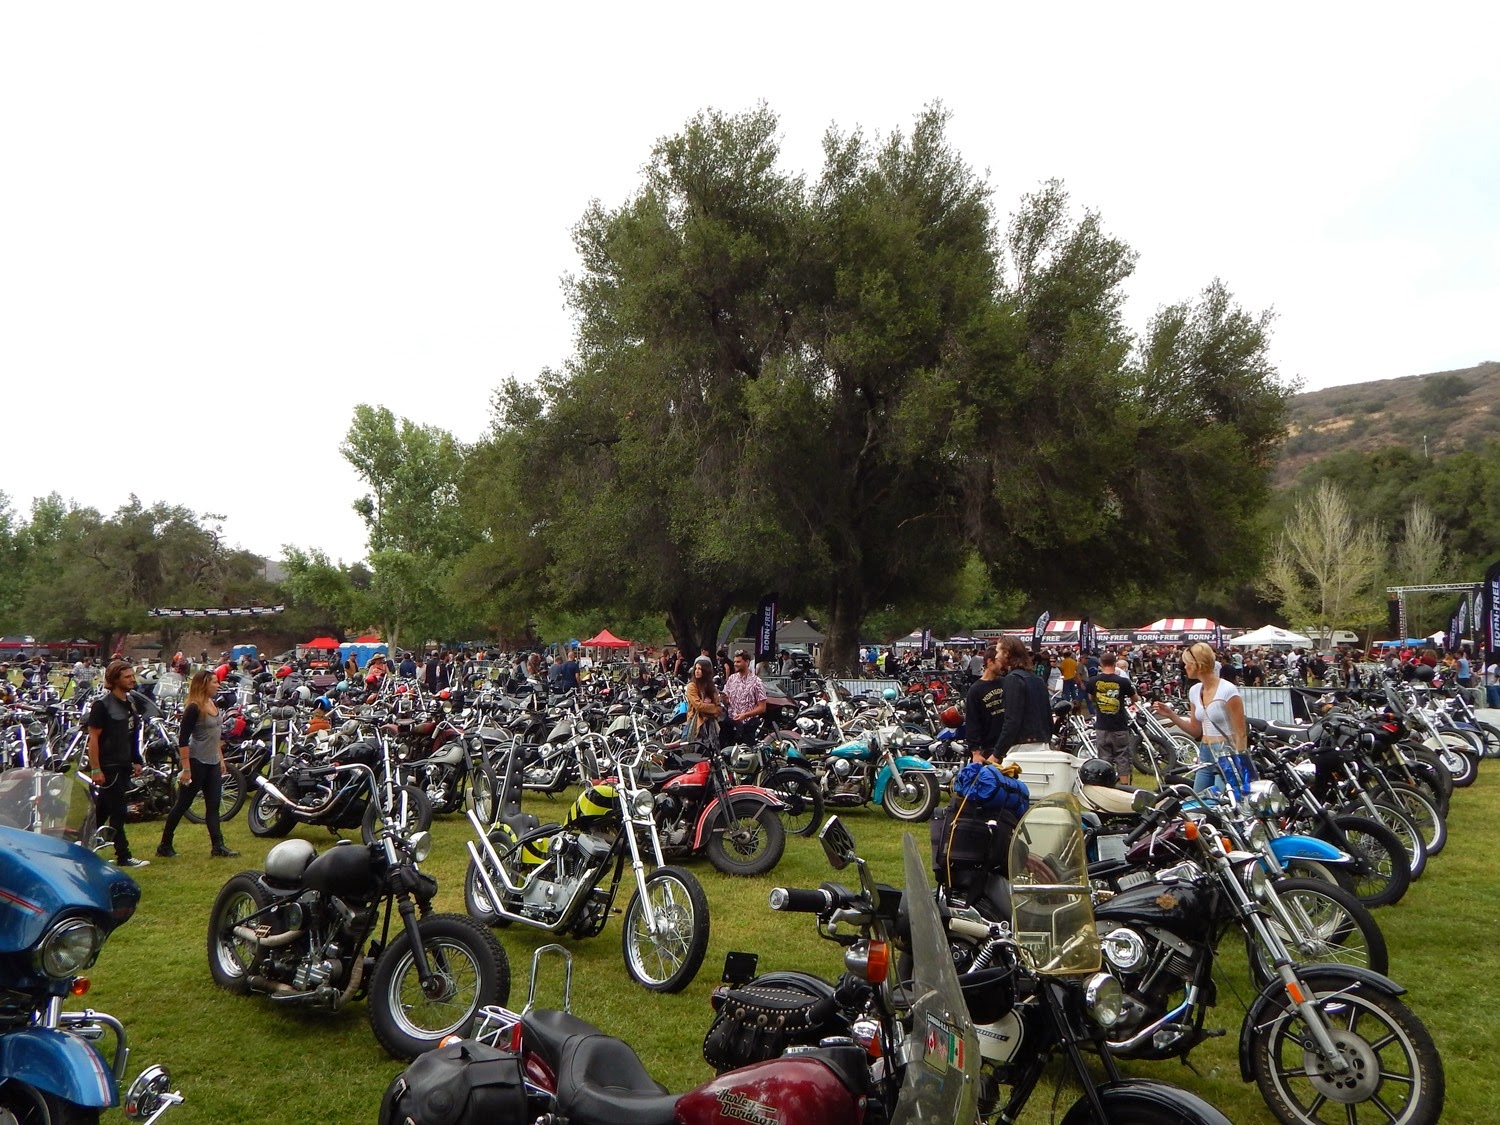 Born Free 6 Motorcycle Show Motorcycles